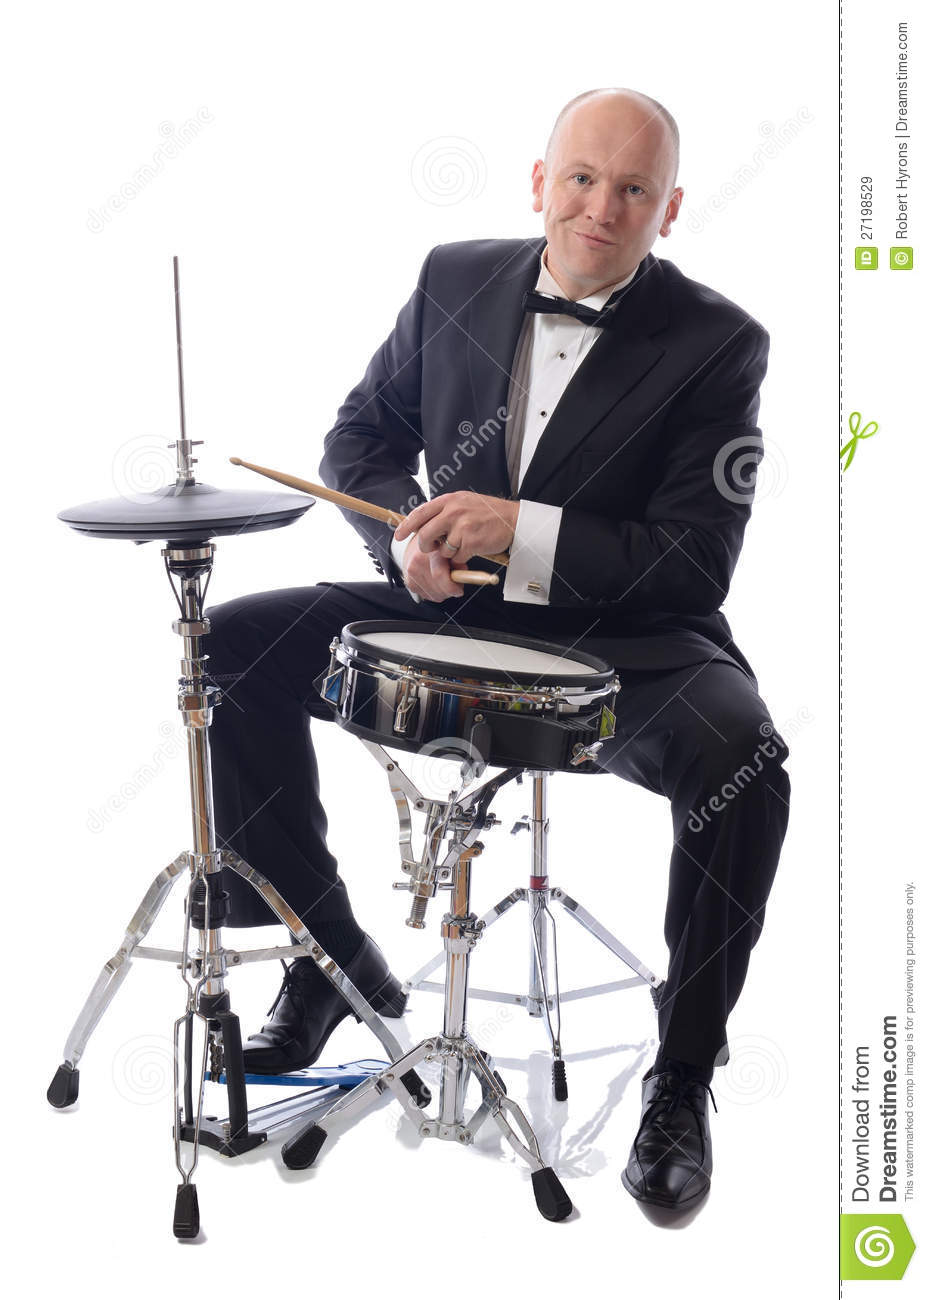 tuxedo playing drums royalty free stock images image. Black Bedroom Furniture Sets. Home Design Ideas